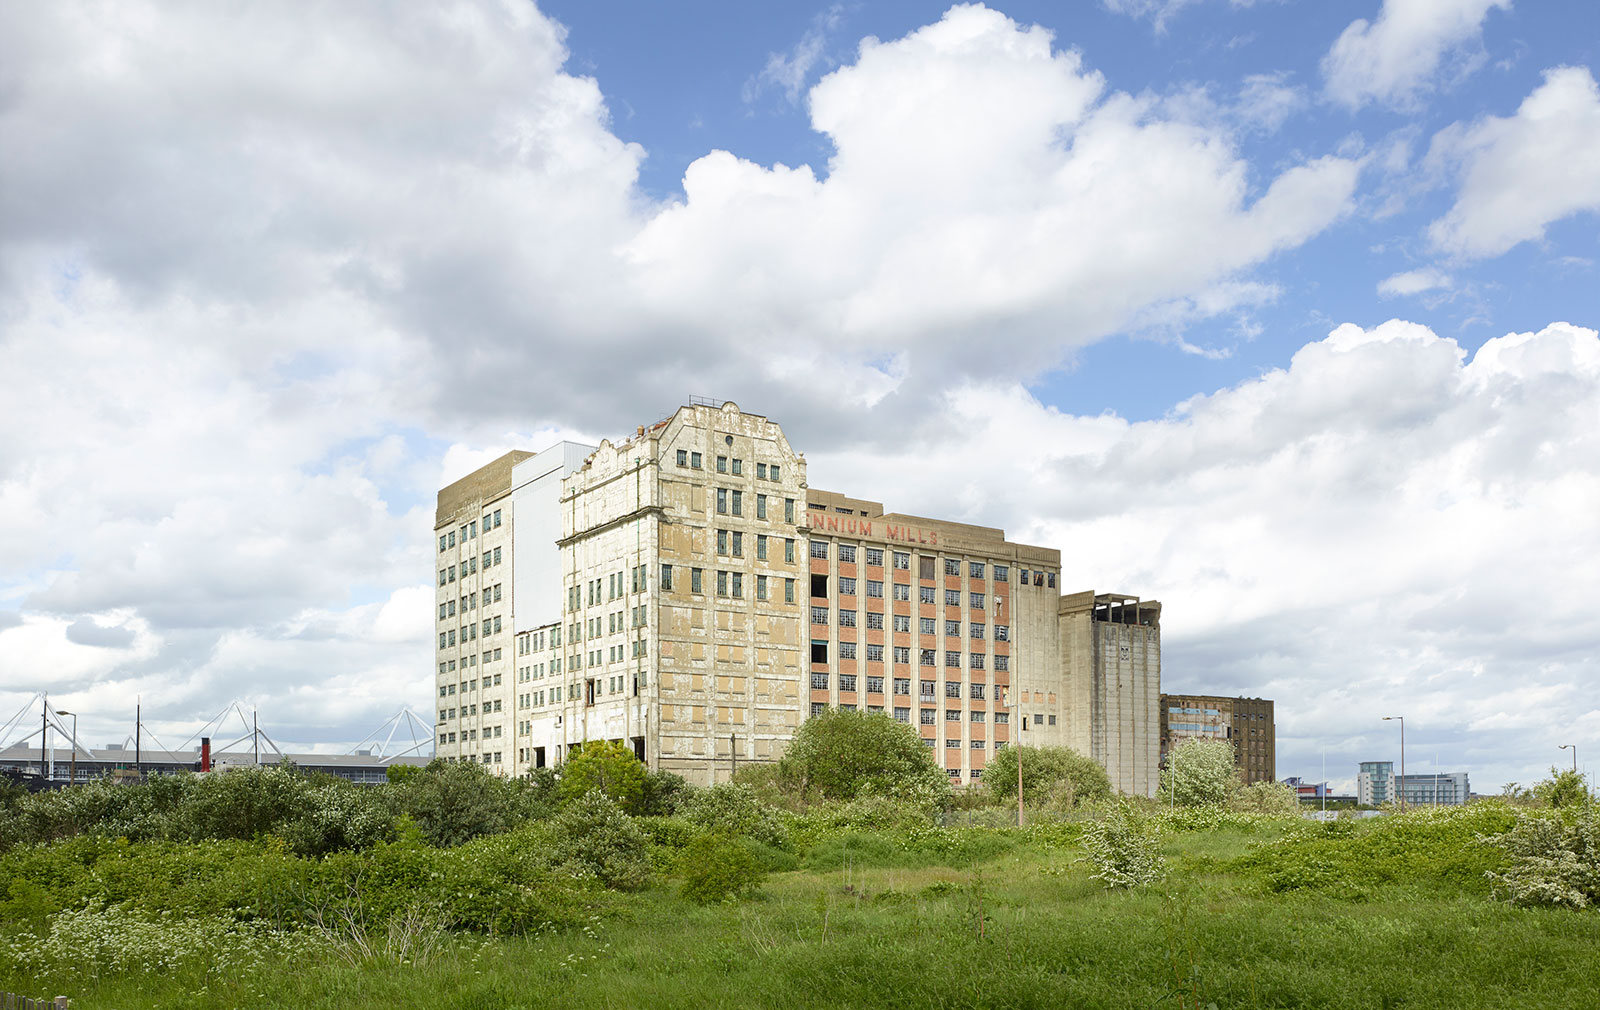 Open House London - Millennium Mills